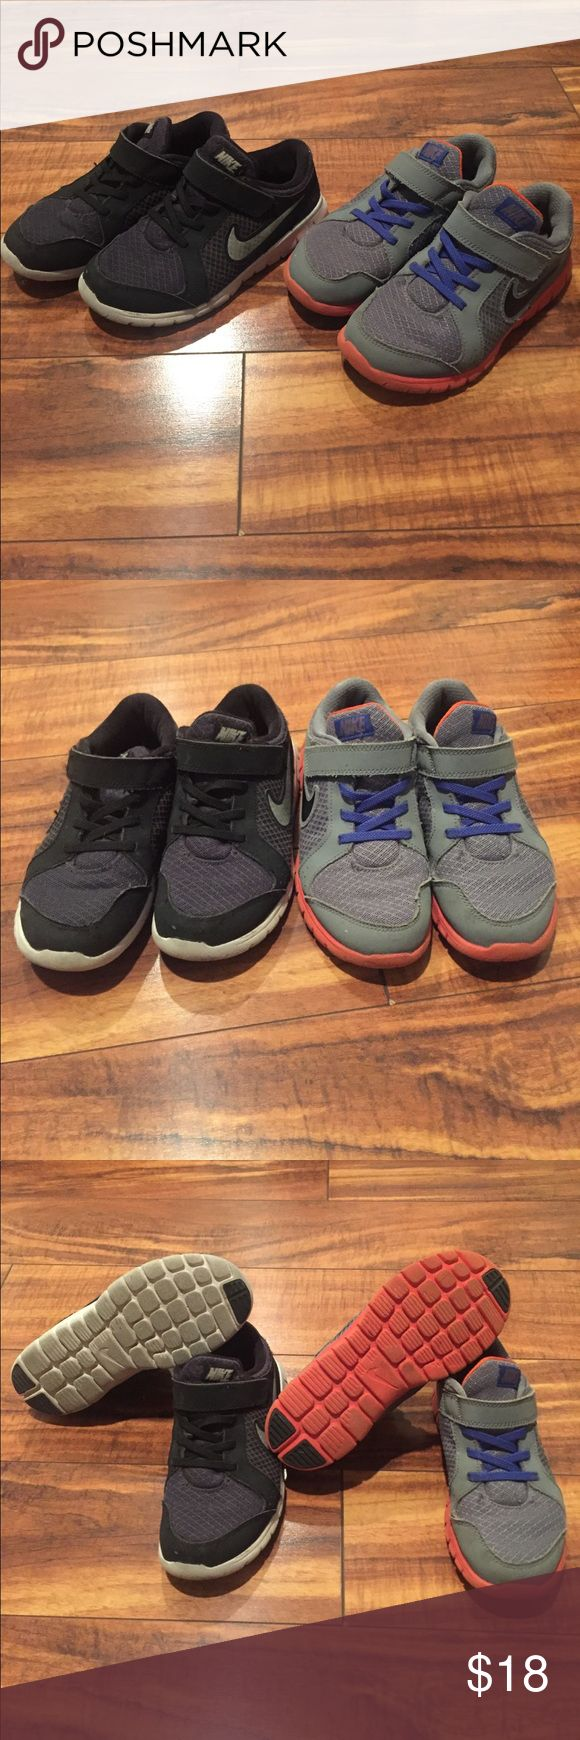 Nike Shoes Size 13 Two pairs of Nike shoes size 13! Great condition! Paid over $60 each! Check out my closet too Nike Shoes Sneakers